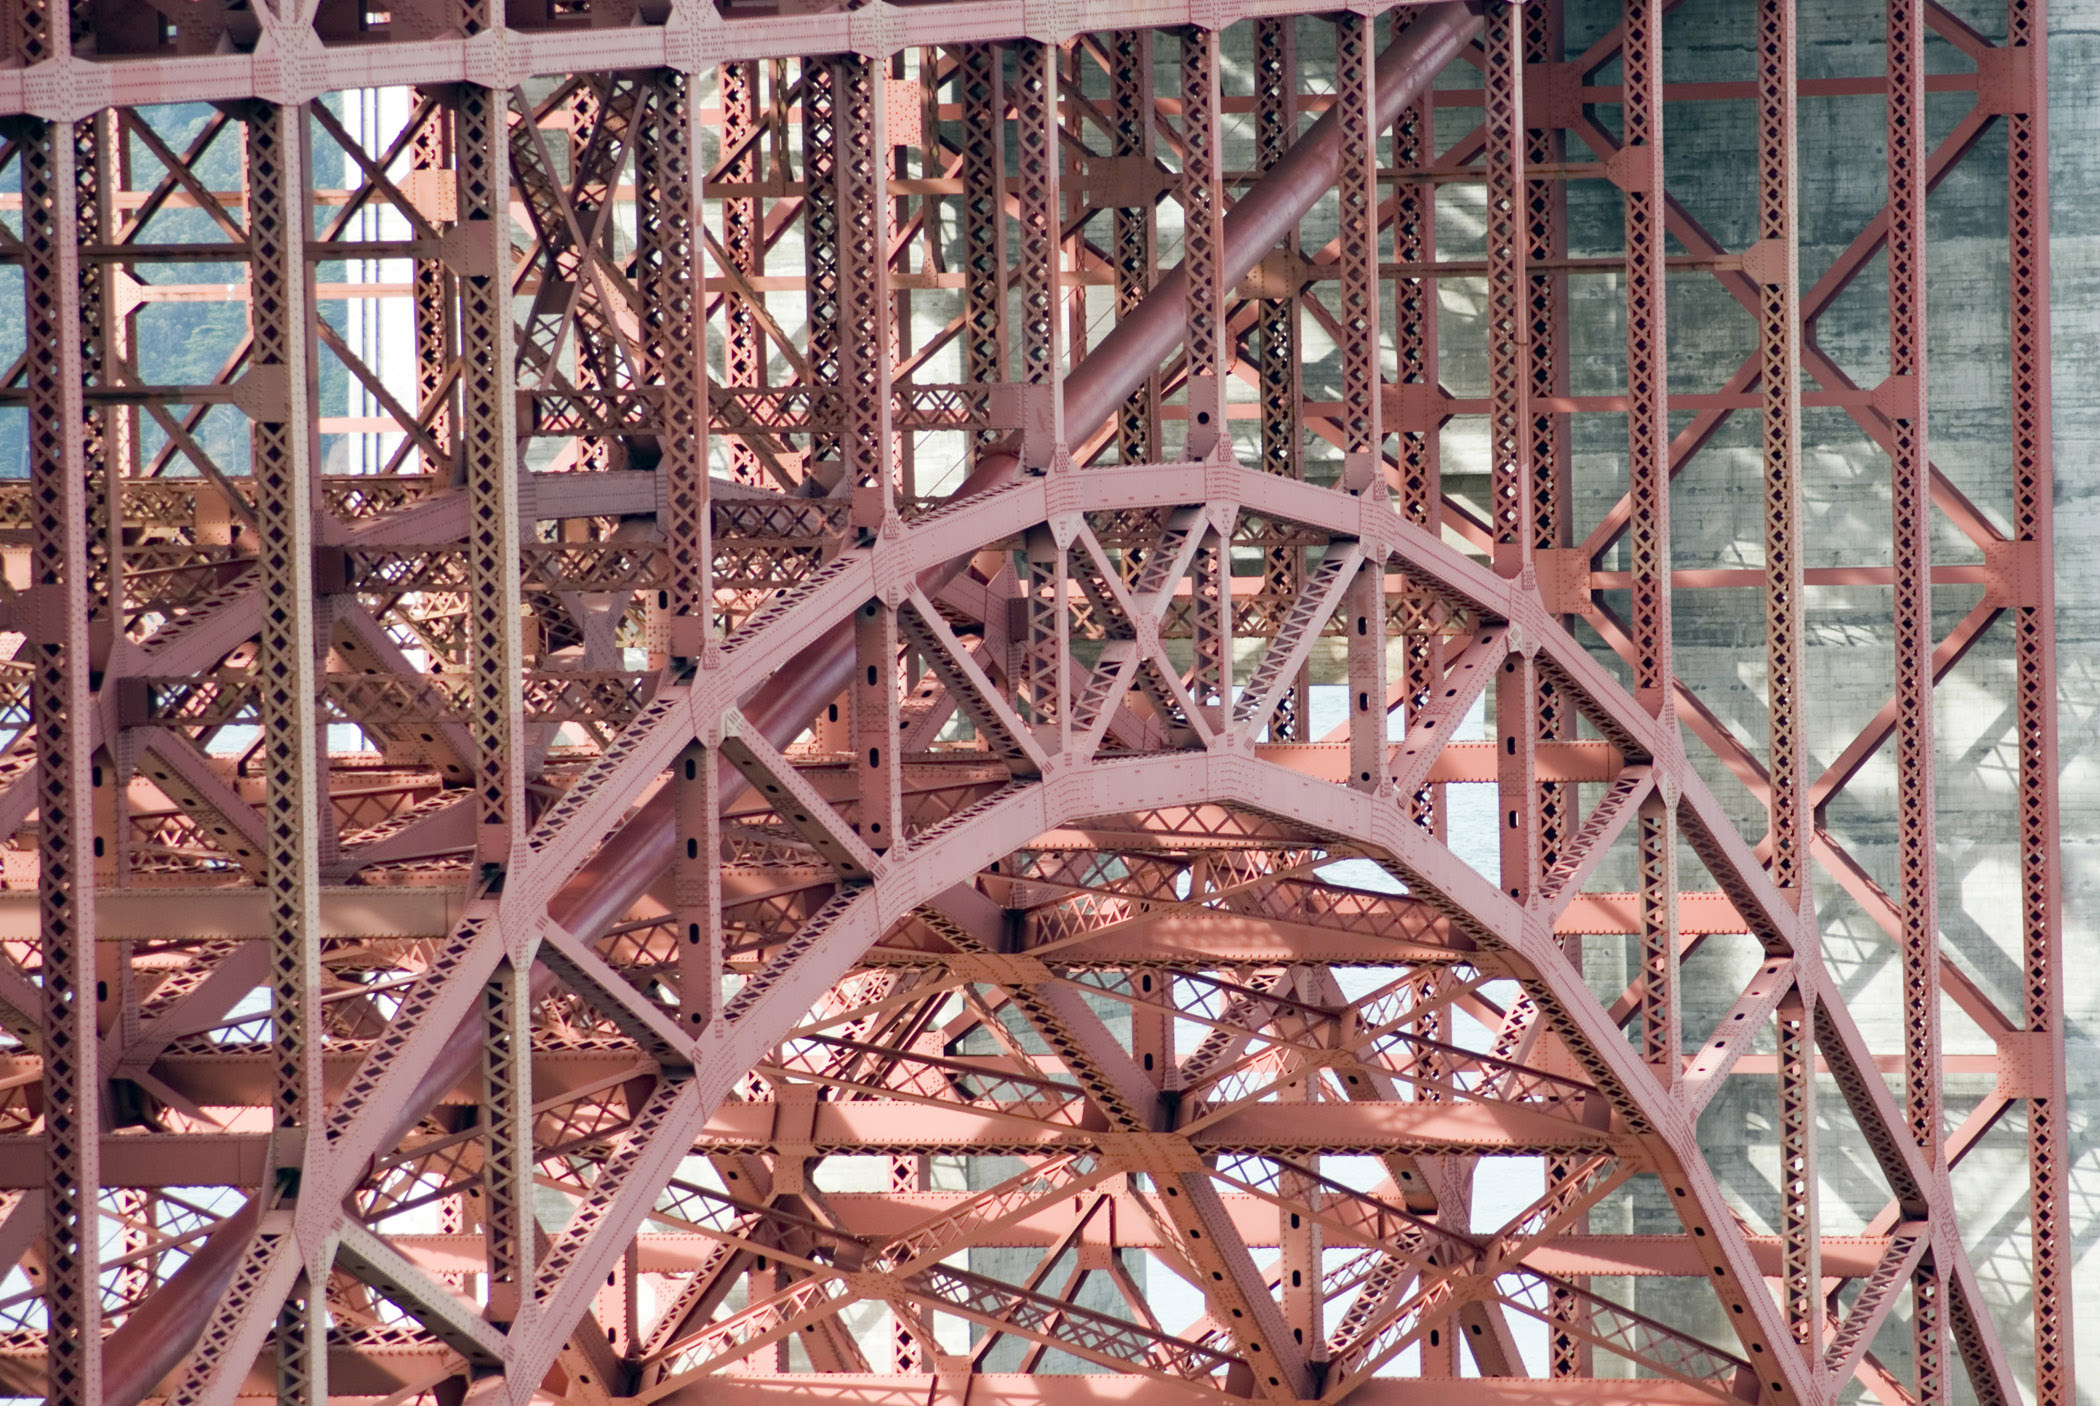 Detail of an arch on the golden gate bridge showing the metal lattice